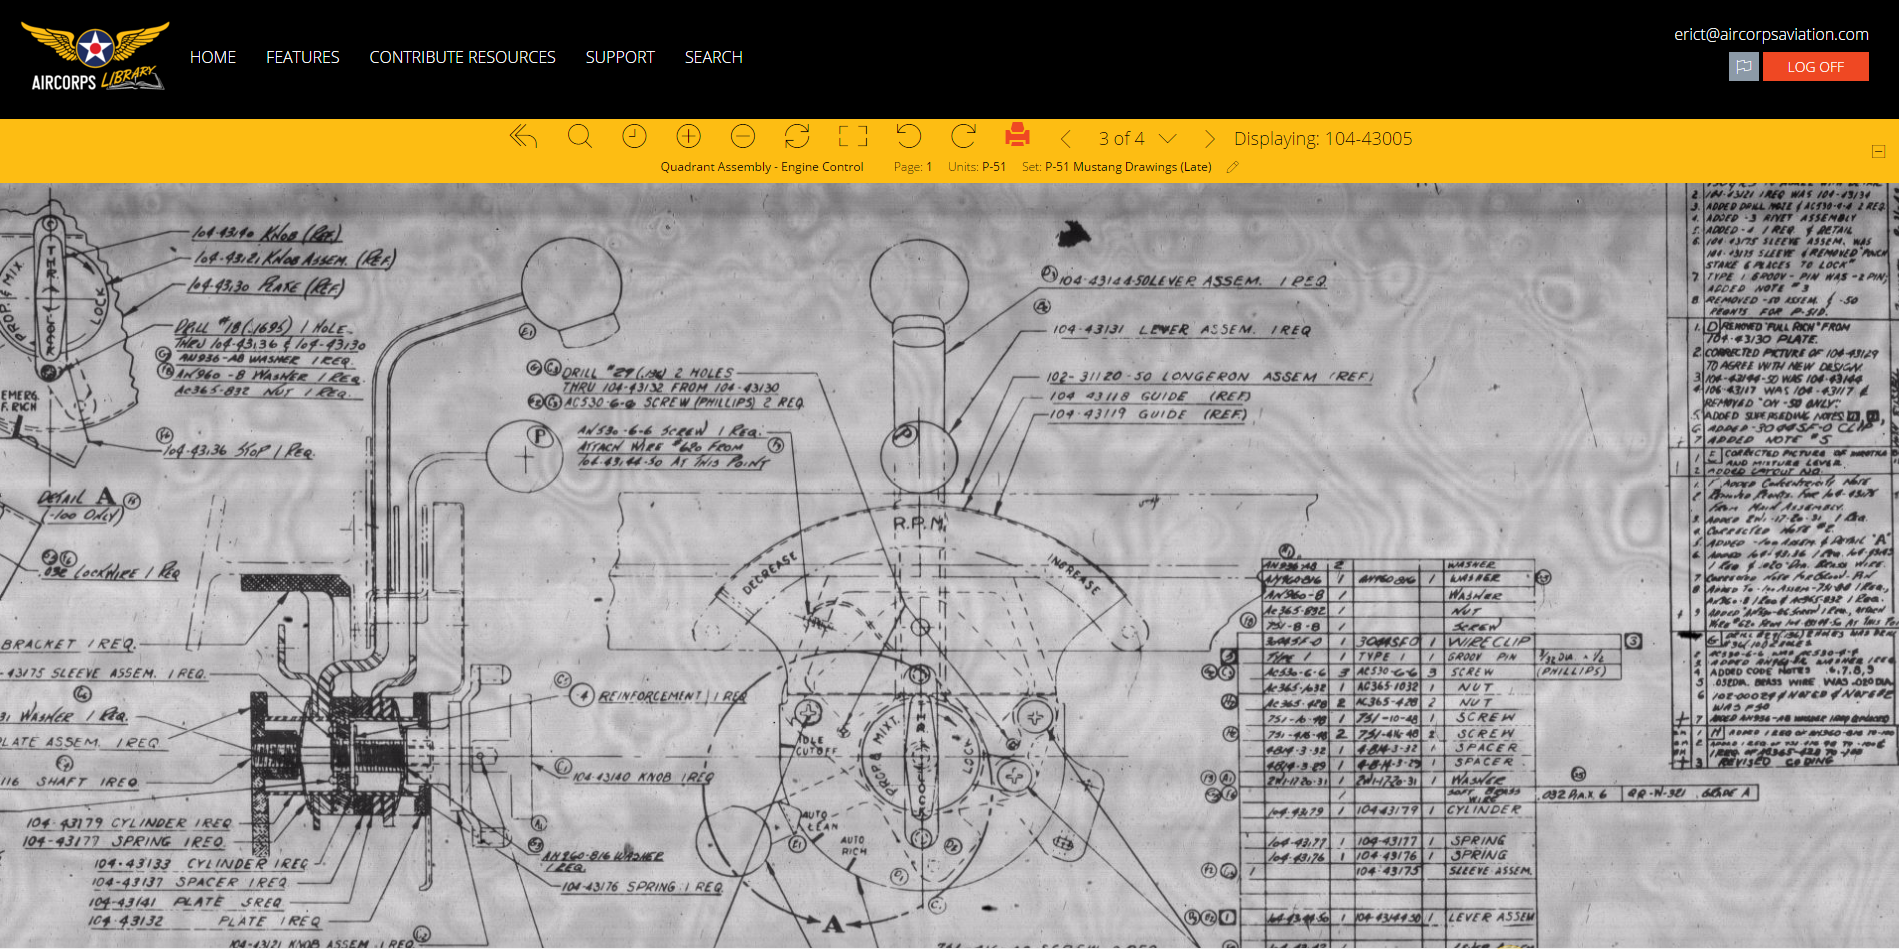 AirCorps Library Released! 500,000+ searchable online microfilm drawings & manuals now live.